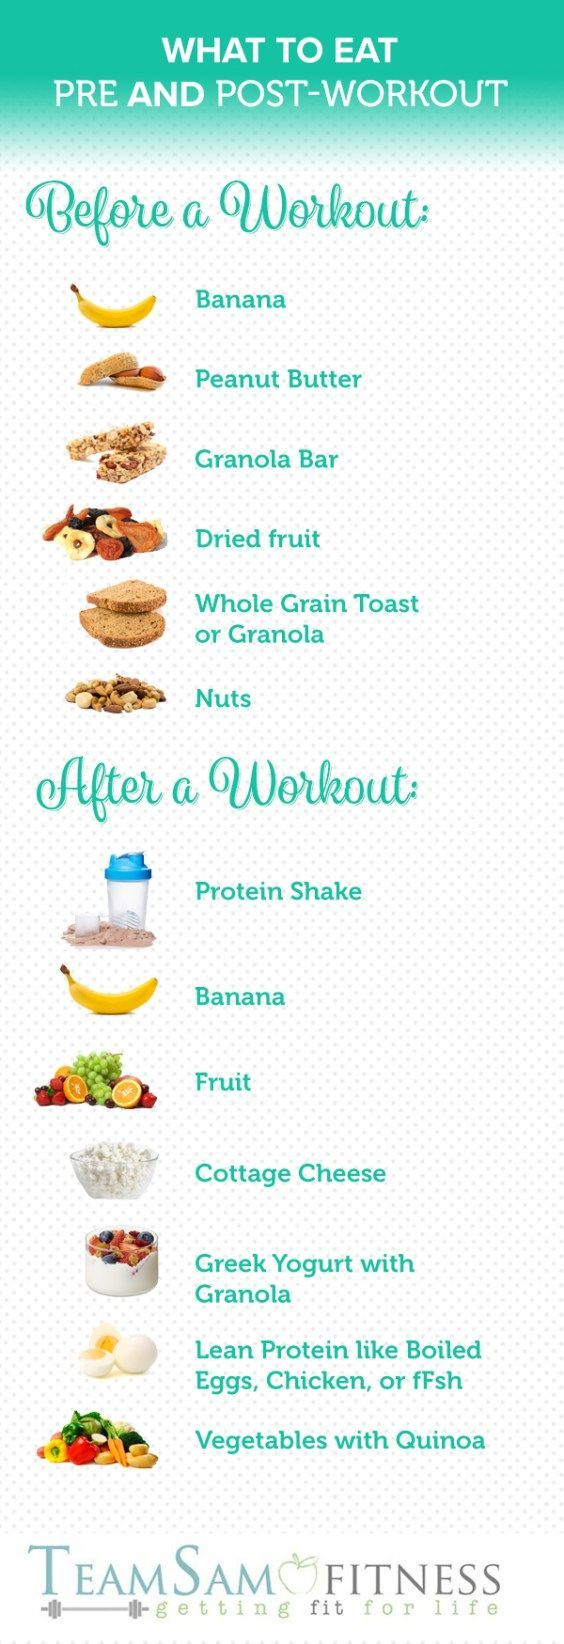 Exact diet plan to lose weight image 9